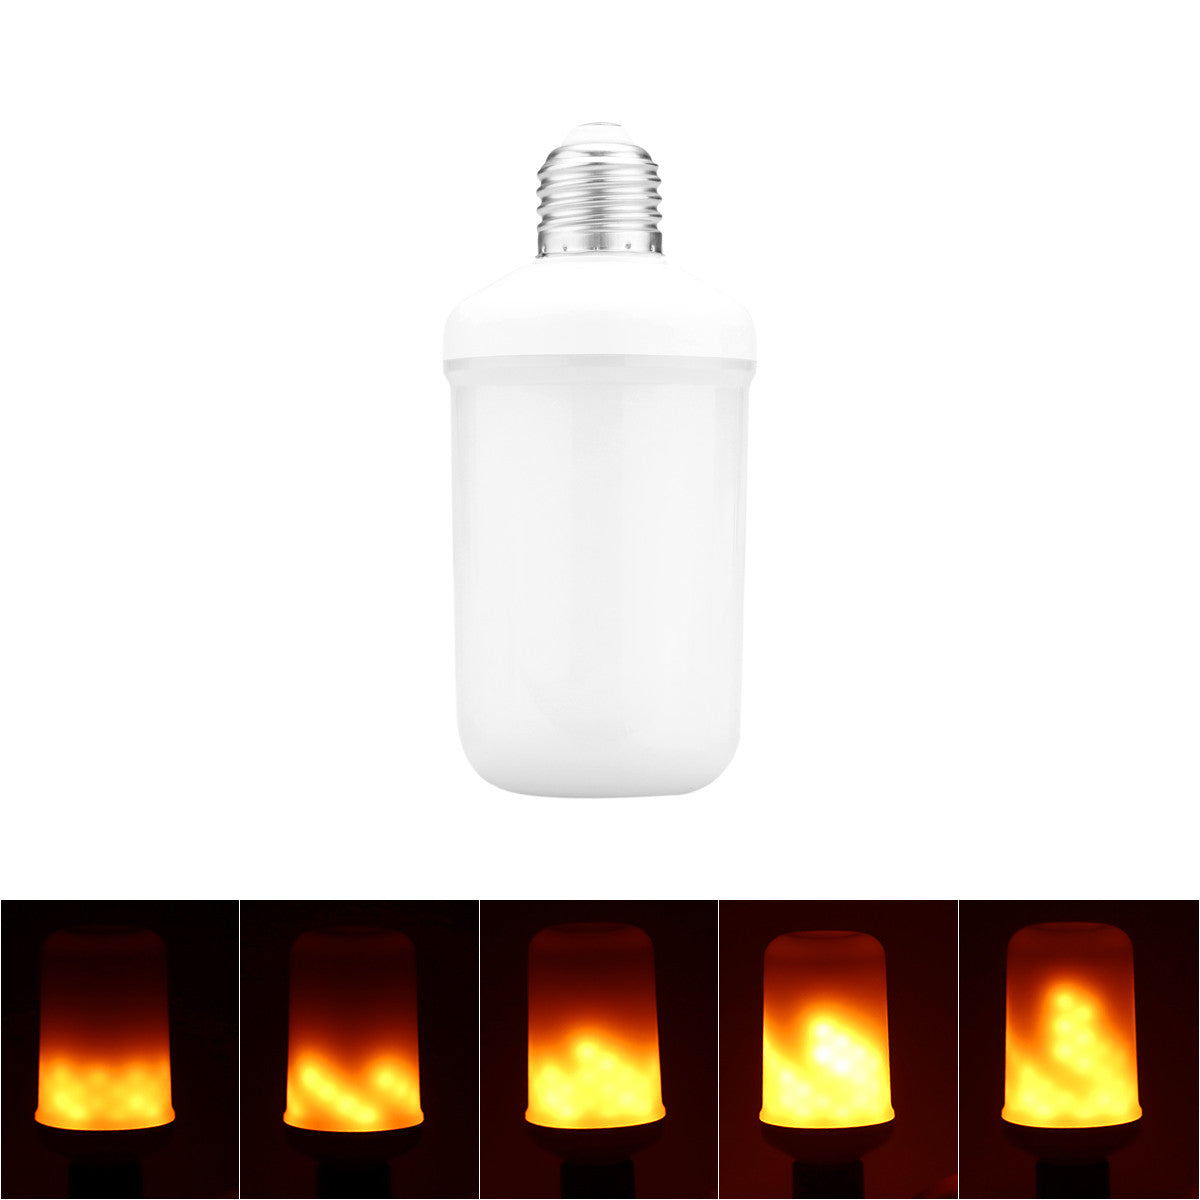 E27 99SMD 3528SMD 5W LED Flame Effect Fire Light Bulbs Dynamic Moving Flame Flickering Emulation Decorative Lamps Dancing Flickering Flame - sweet-casa.com